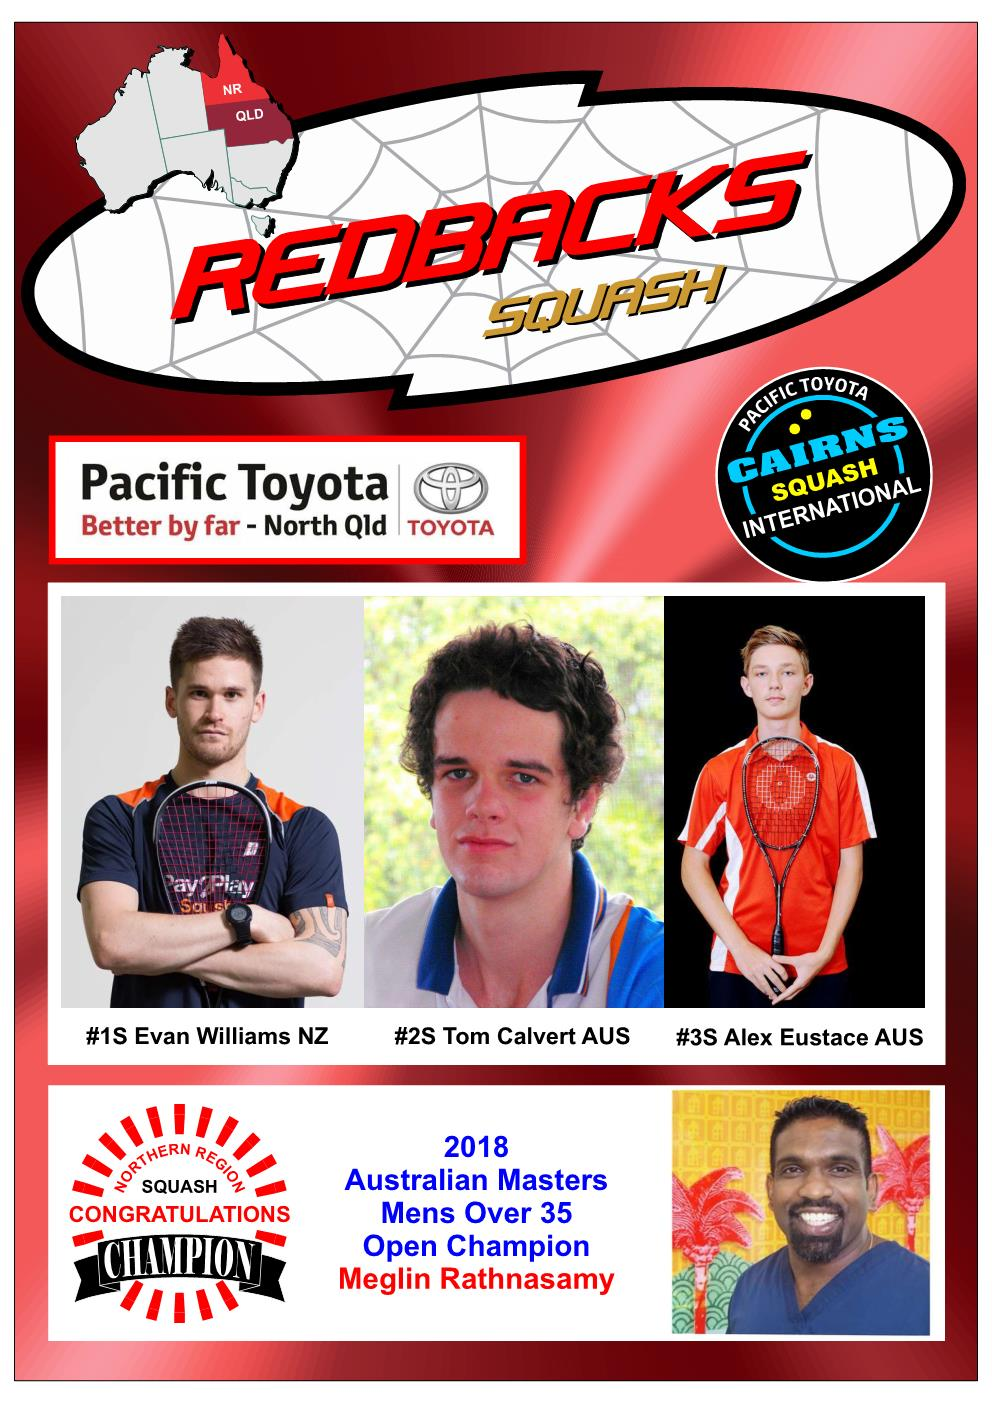 Redbacks Squash Newsletter October 2018